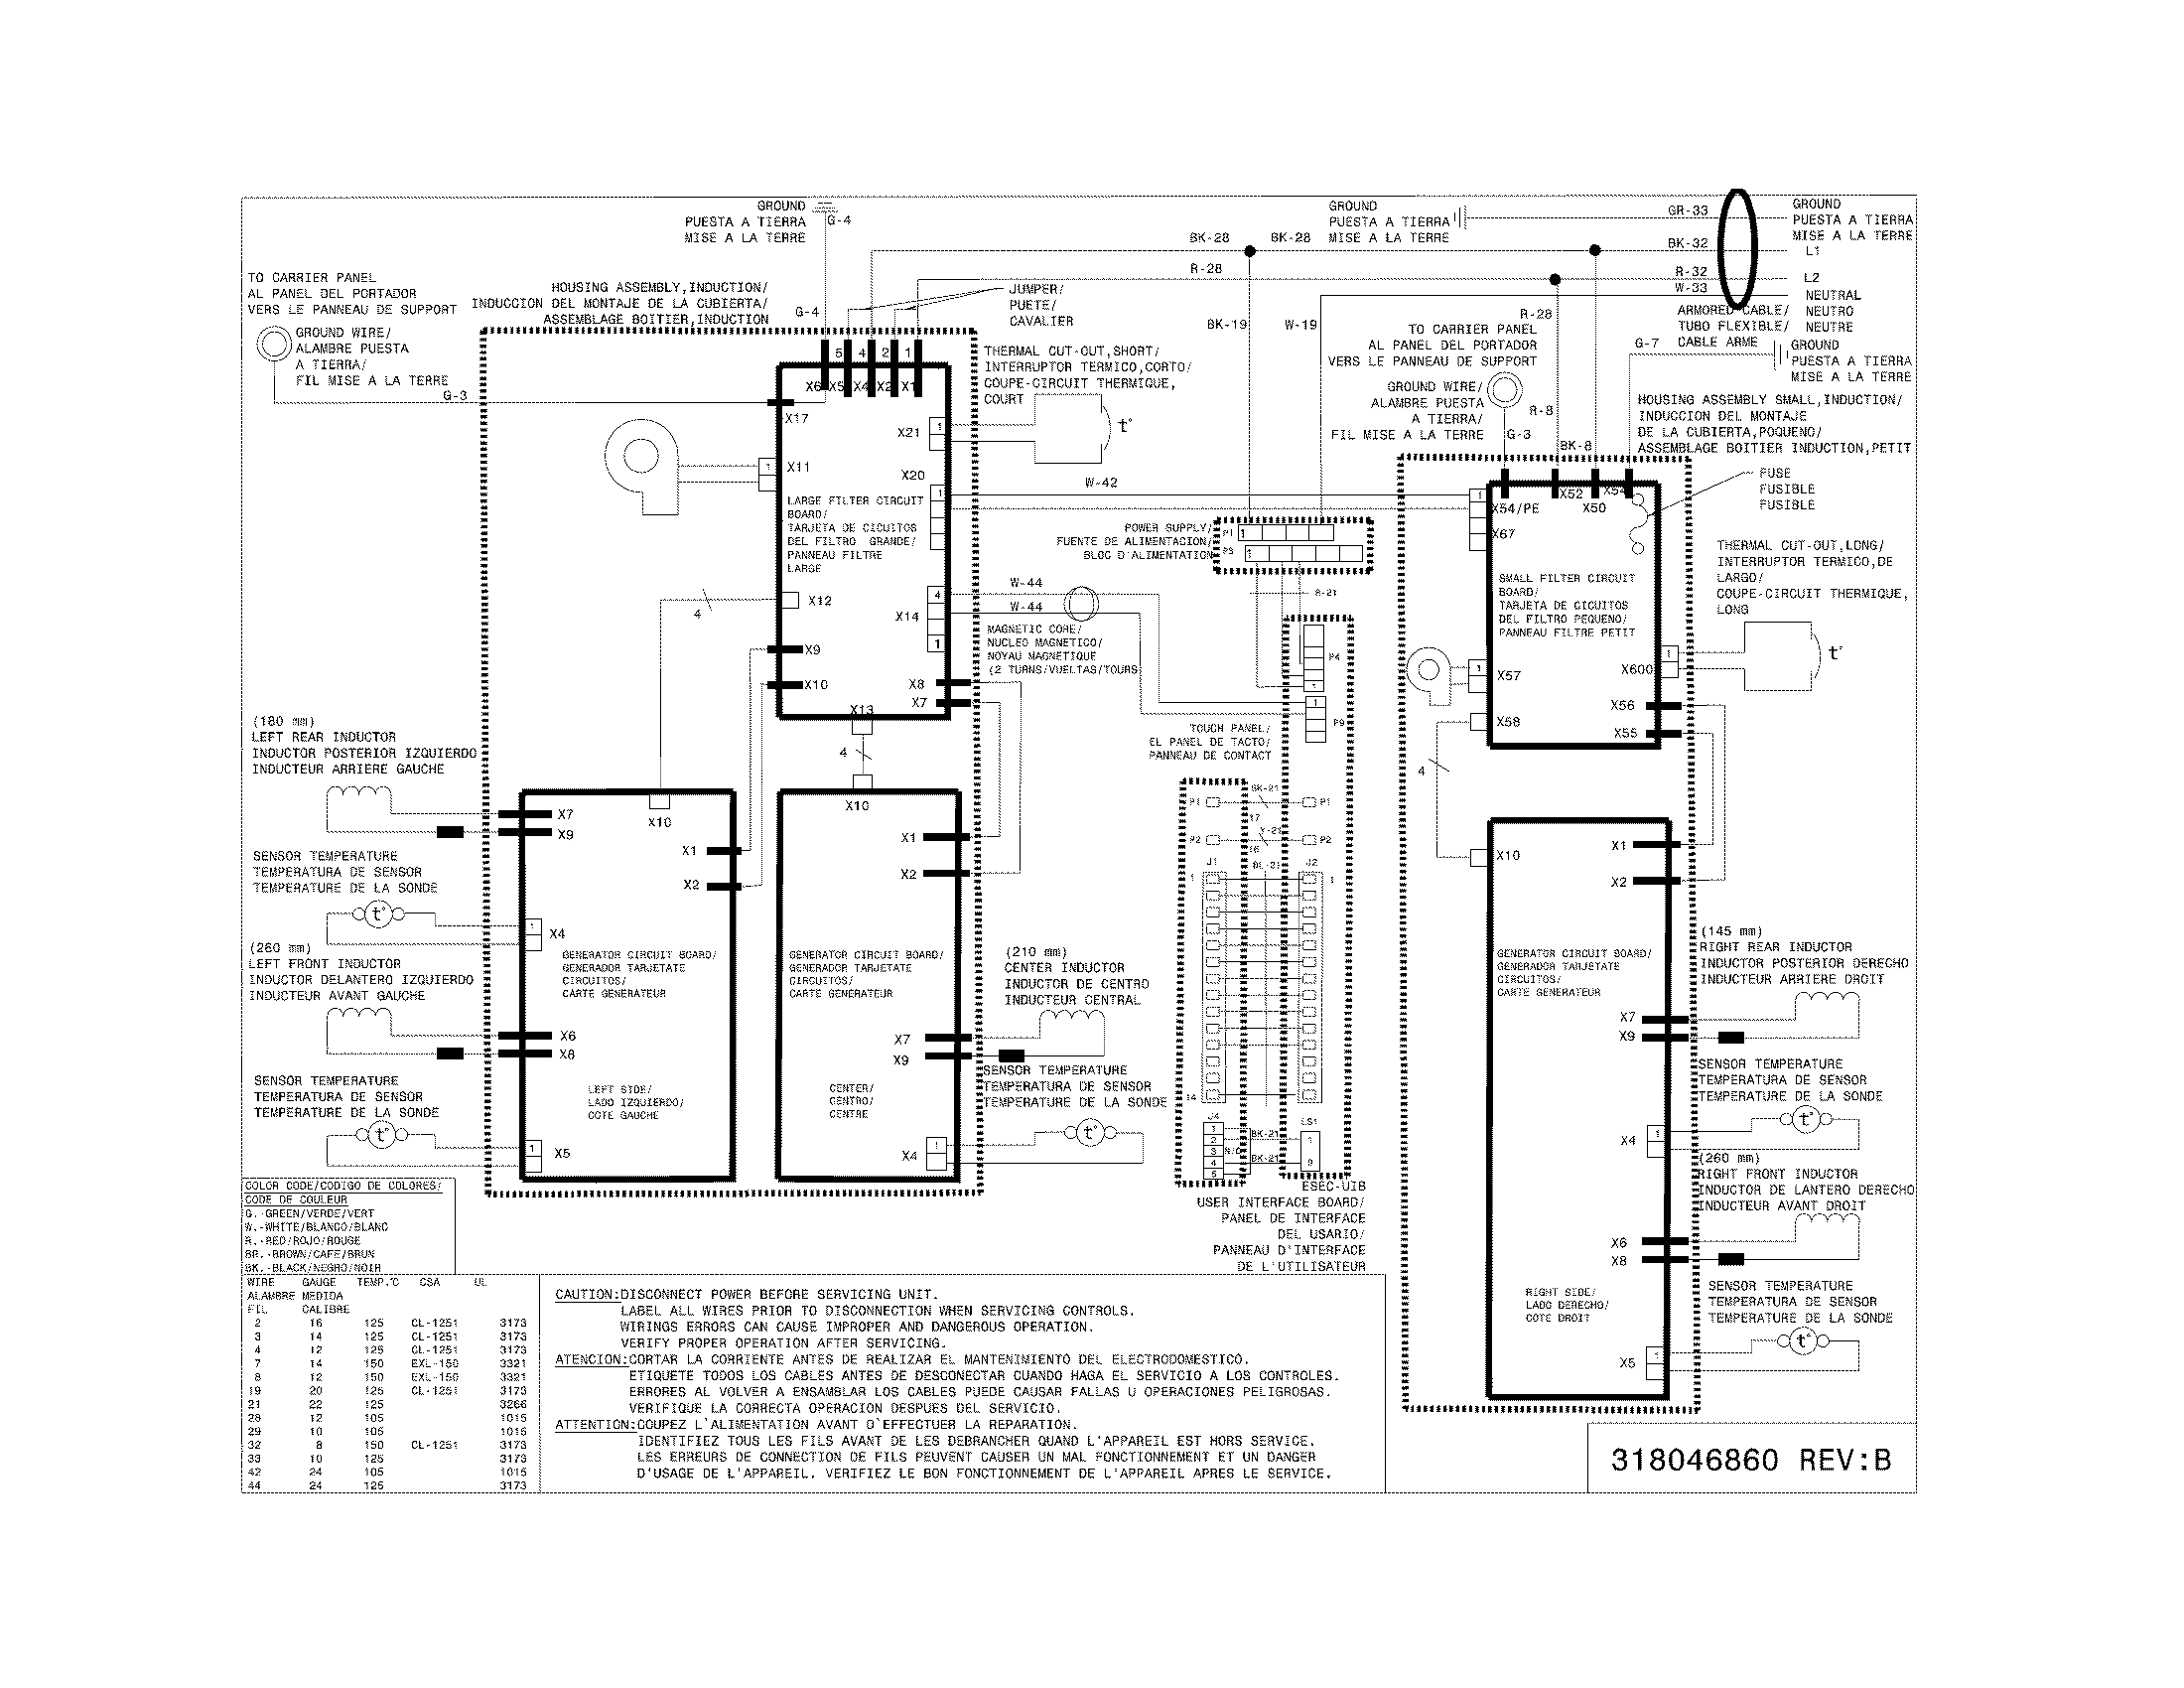 workhorse chis wiring diagram with 2002 Ezgo Workhorse Wiring Diagram on Workhorse Chis Wiring Diagram together with Sea Breeze Motorhome Wiring Diagram further 2005 Workhorse Ignition Wiring Diagram further Workhorse Motorhome Chis Wiring Diagram besides Workhorse 3 Ballast Wiring Diagram.